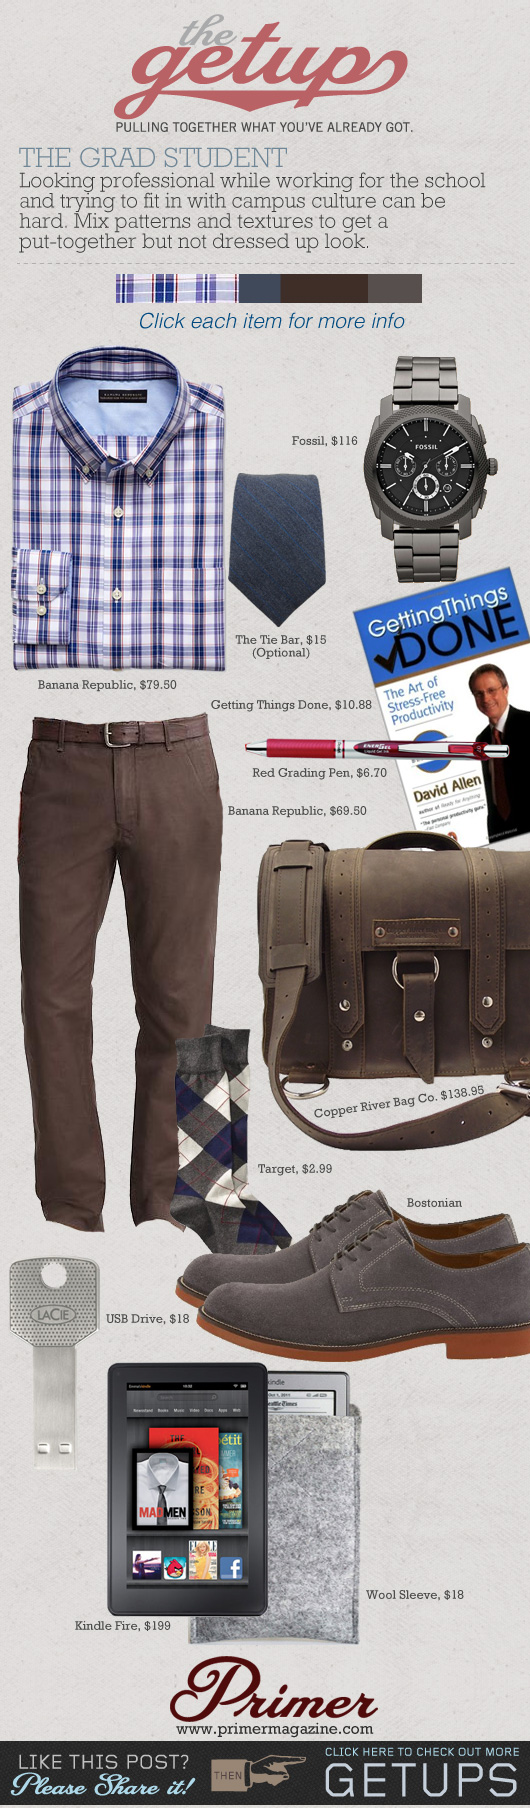 The Getup Grad Student - plaid shirt, brown pants, saddleback leather briefcase collage